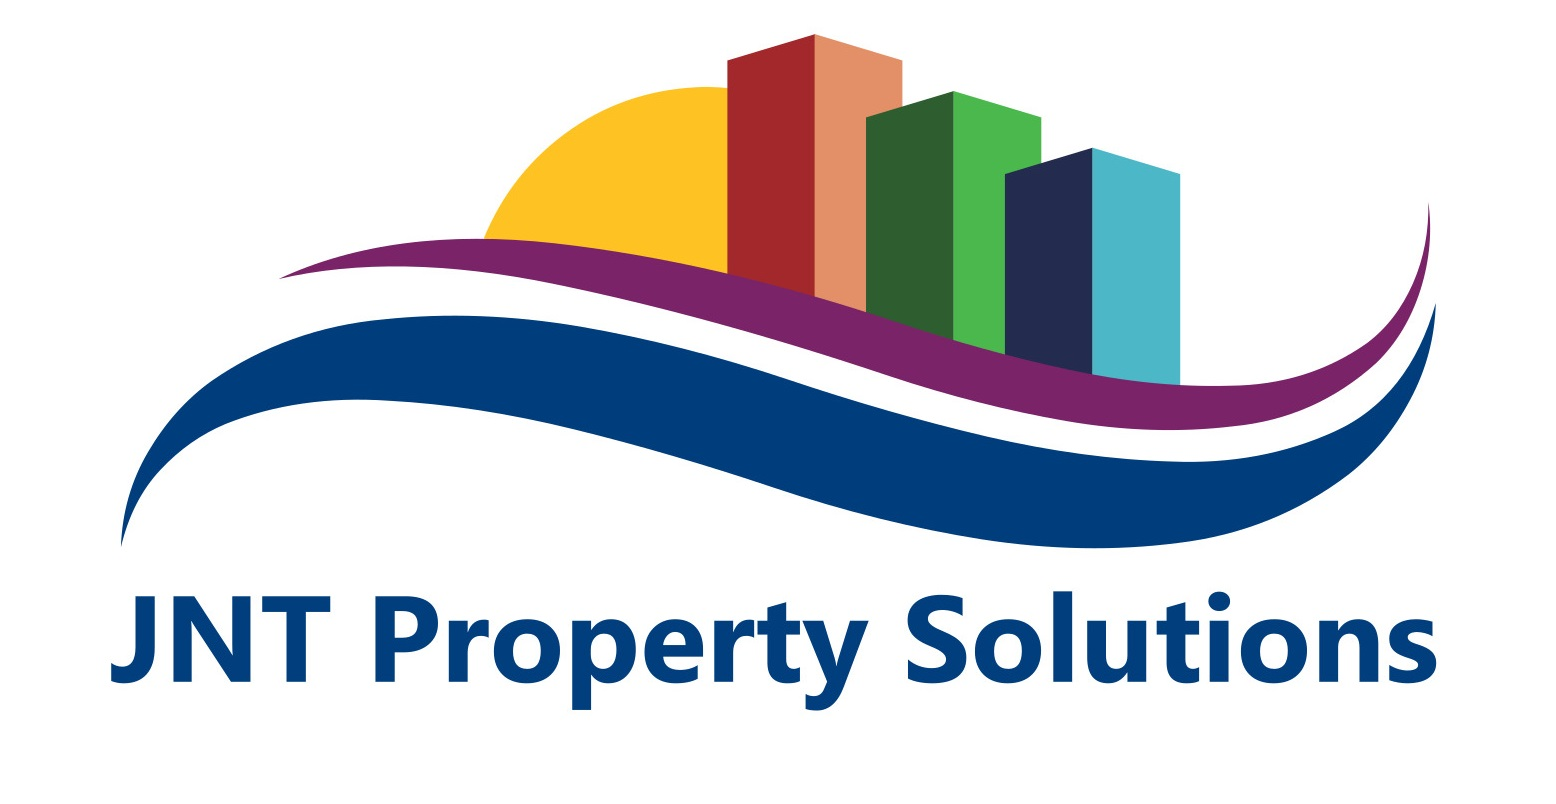 JNT property Solutions